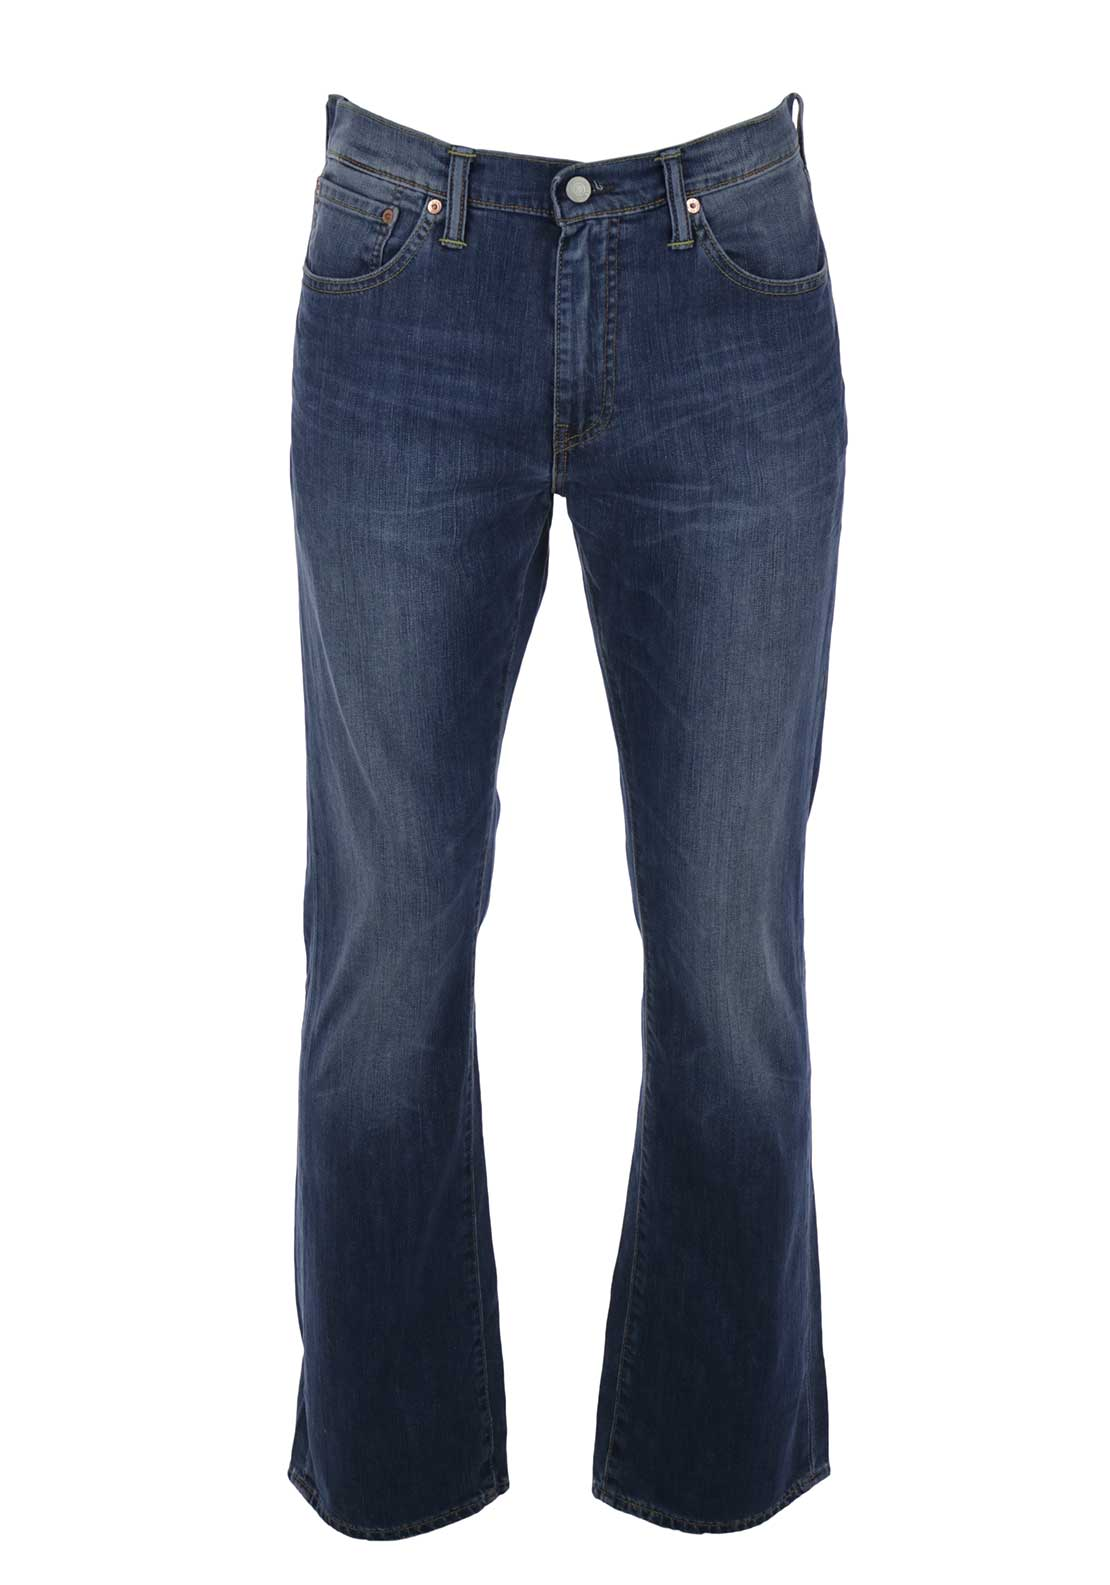 Levis Mens 527 Slim Bootcut Jeans, Mostly Mid Blue